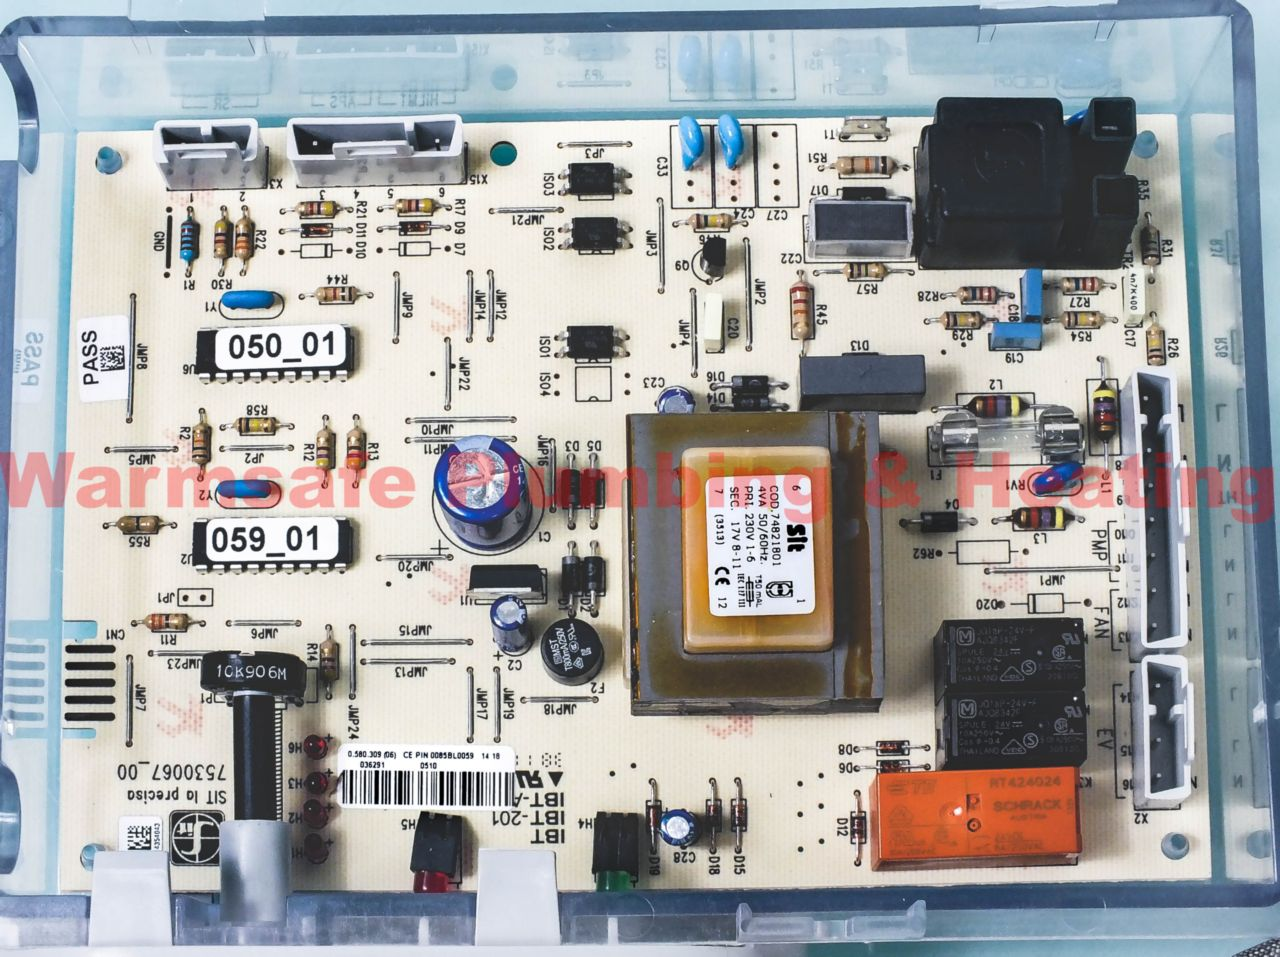 Halstead 988470 printed circuit board assembly